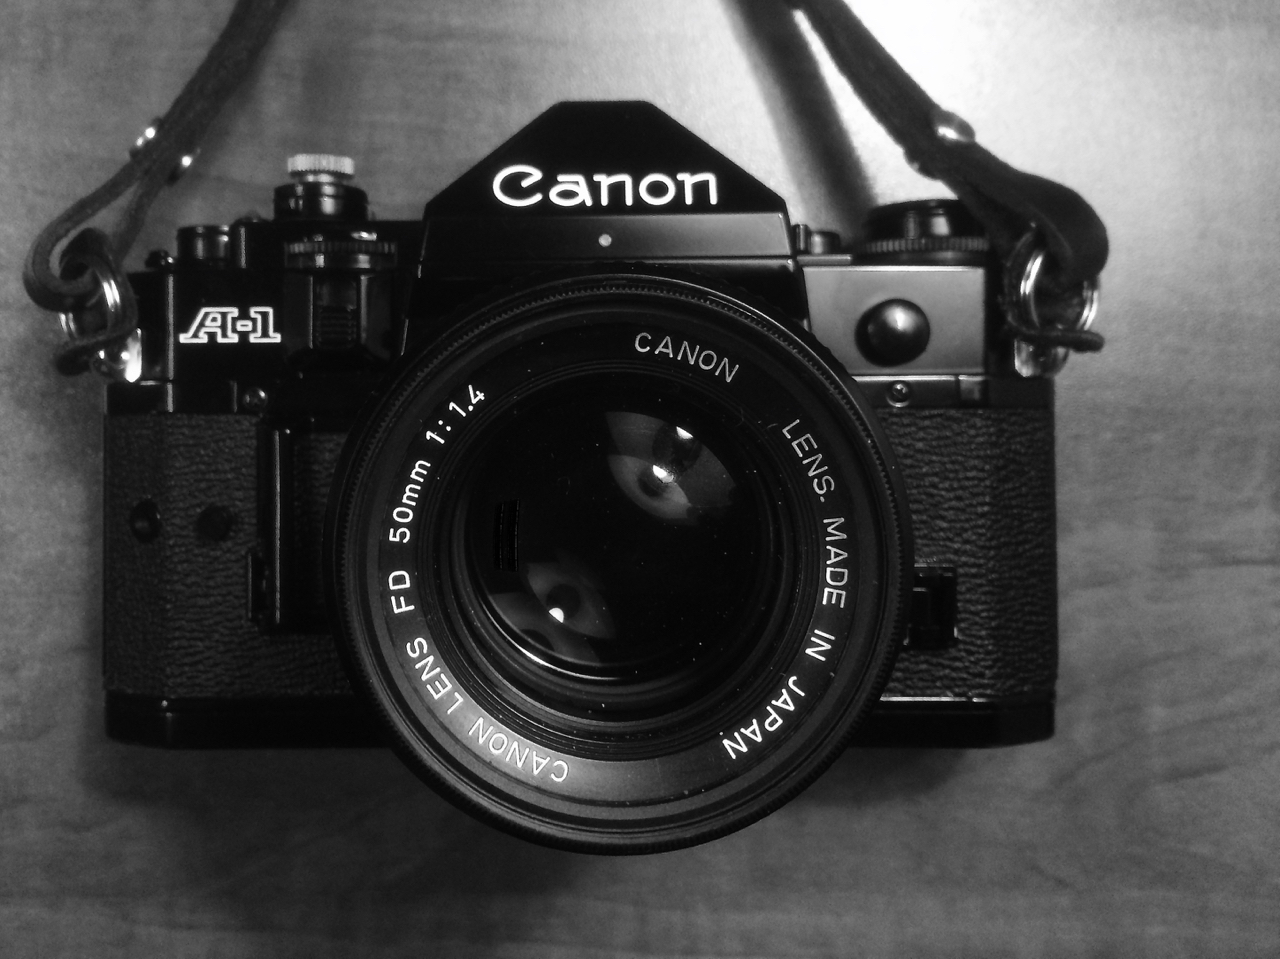 Canon A-1 - Point & Shoot & More!